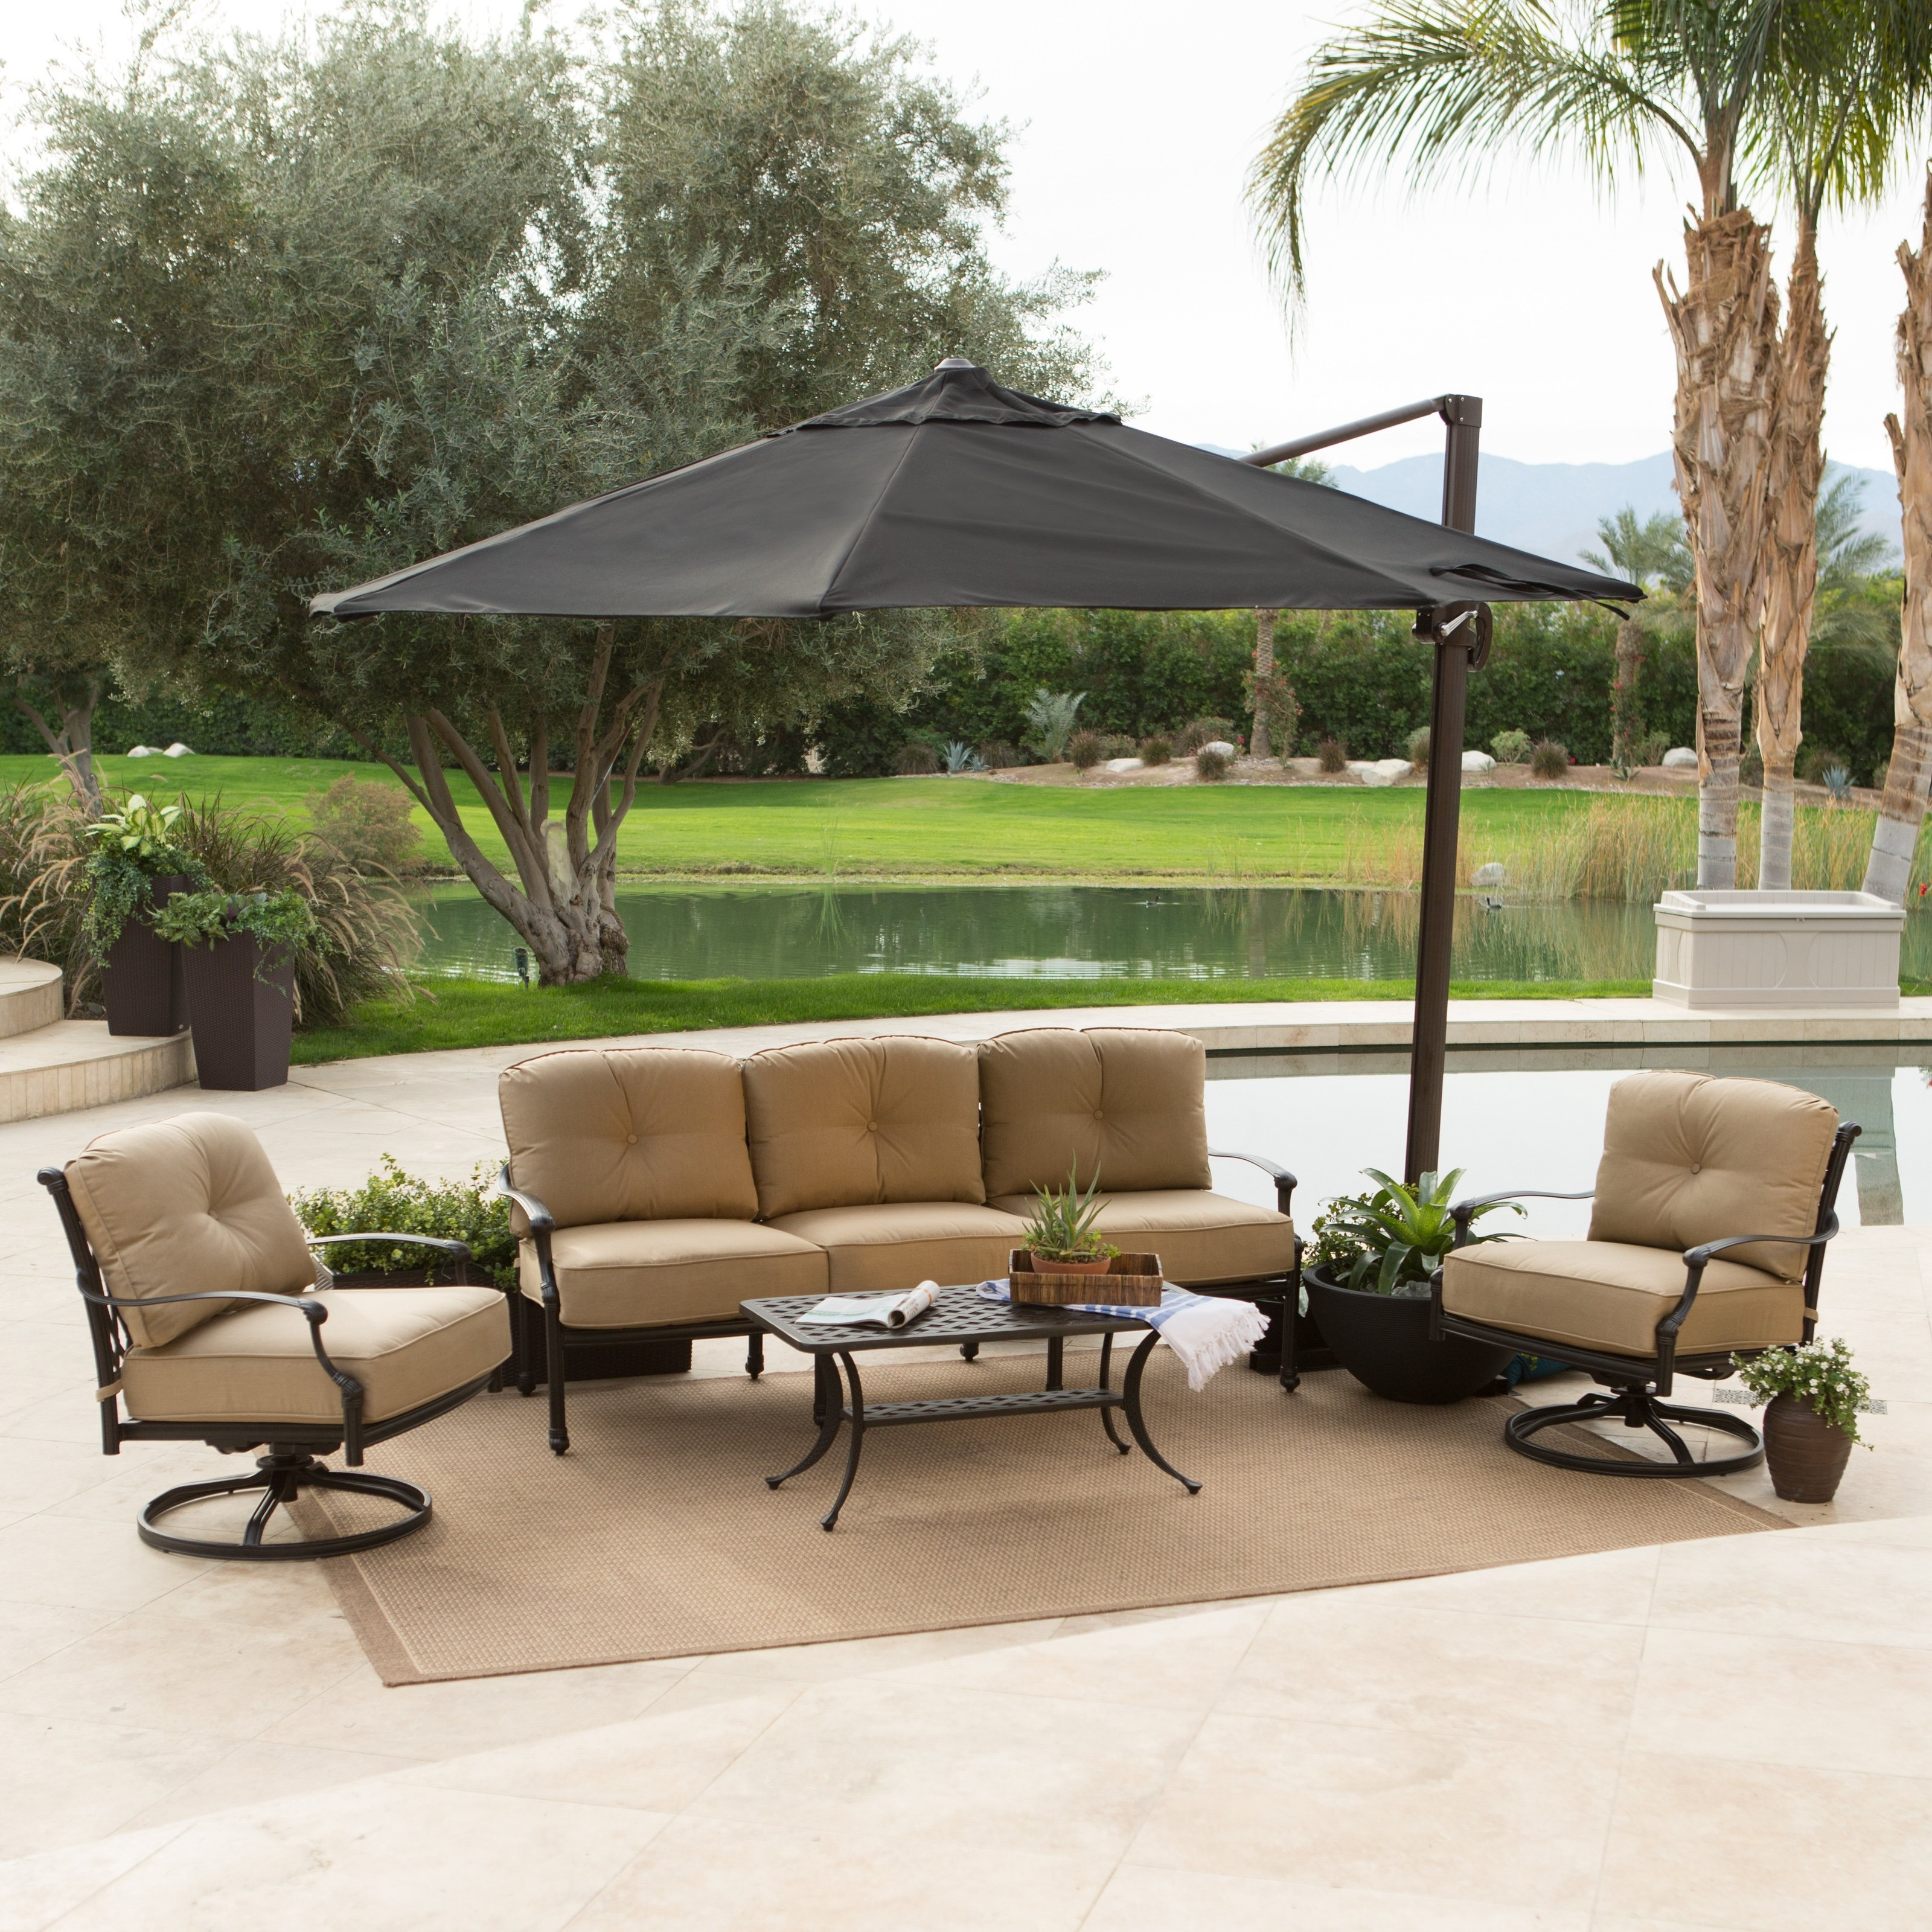 Most Recent Rectangular Offset Patio Umbrellas Within Cheerful Outdoor Patio Design With Chairs And Table Sets Protected (View 7 of 20)